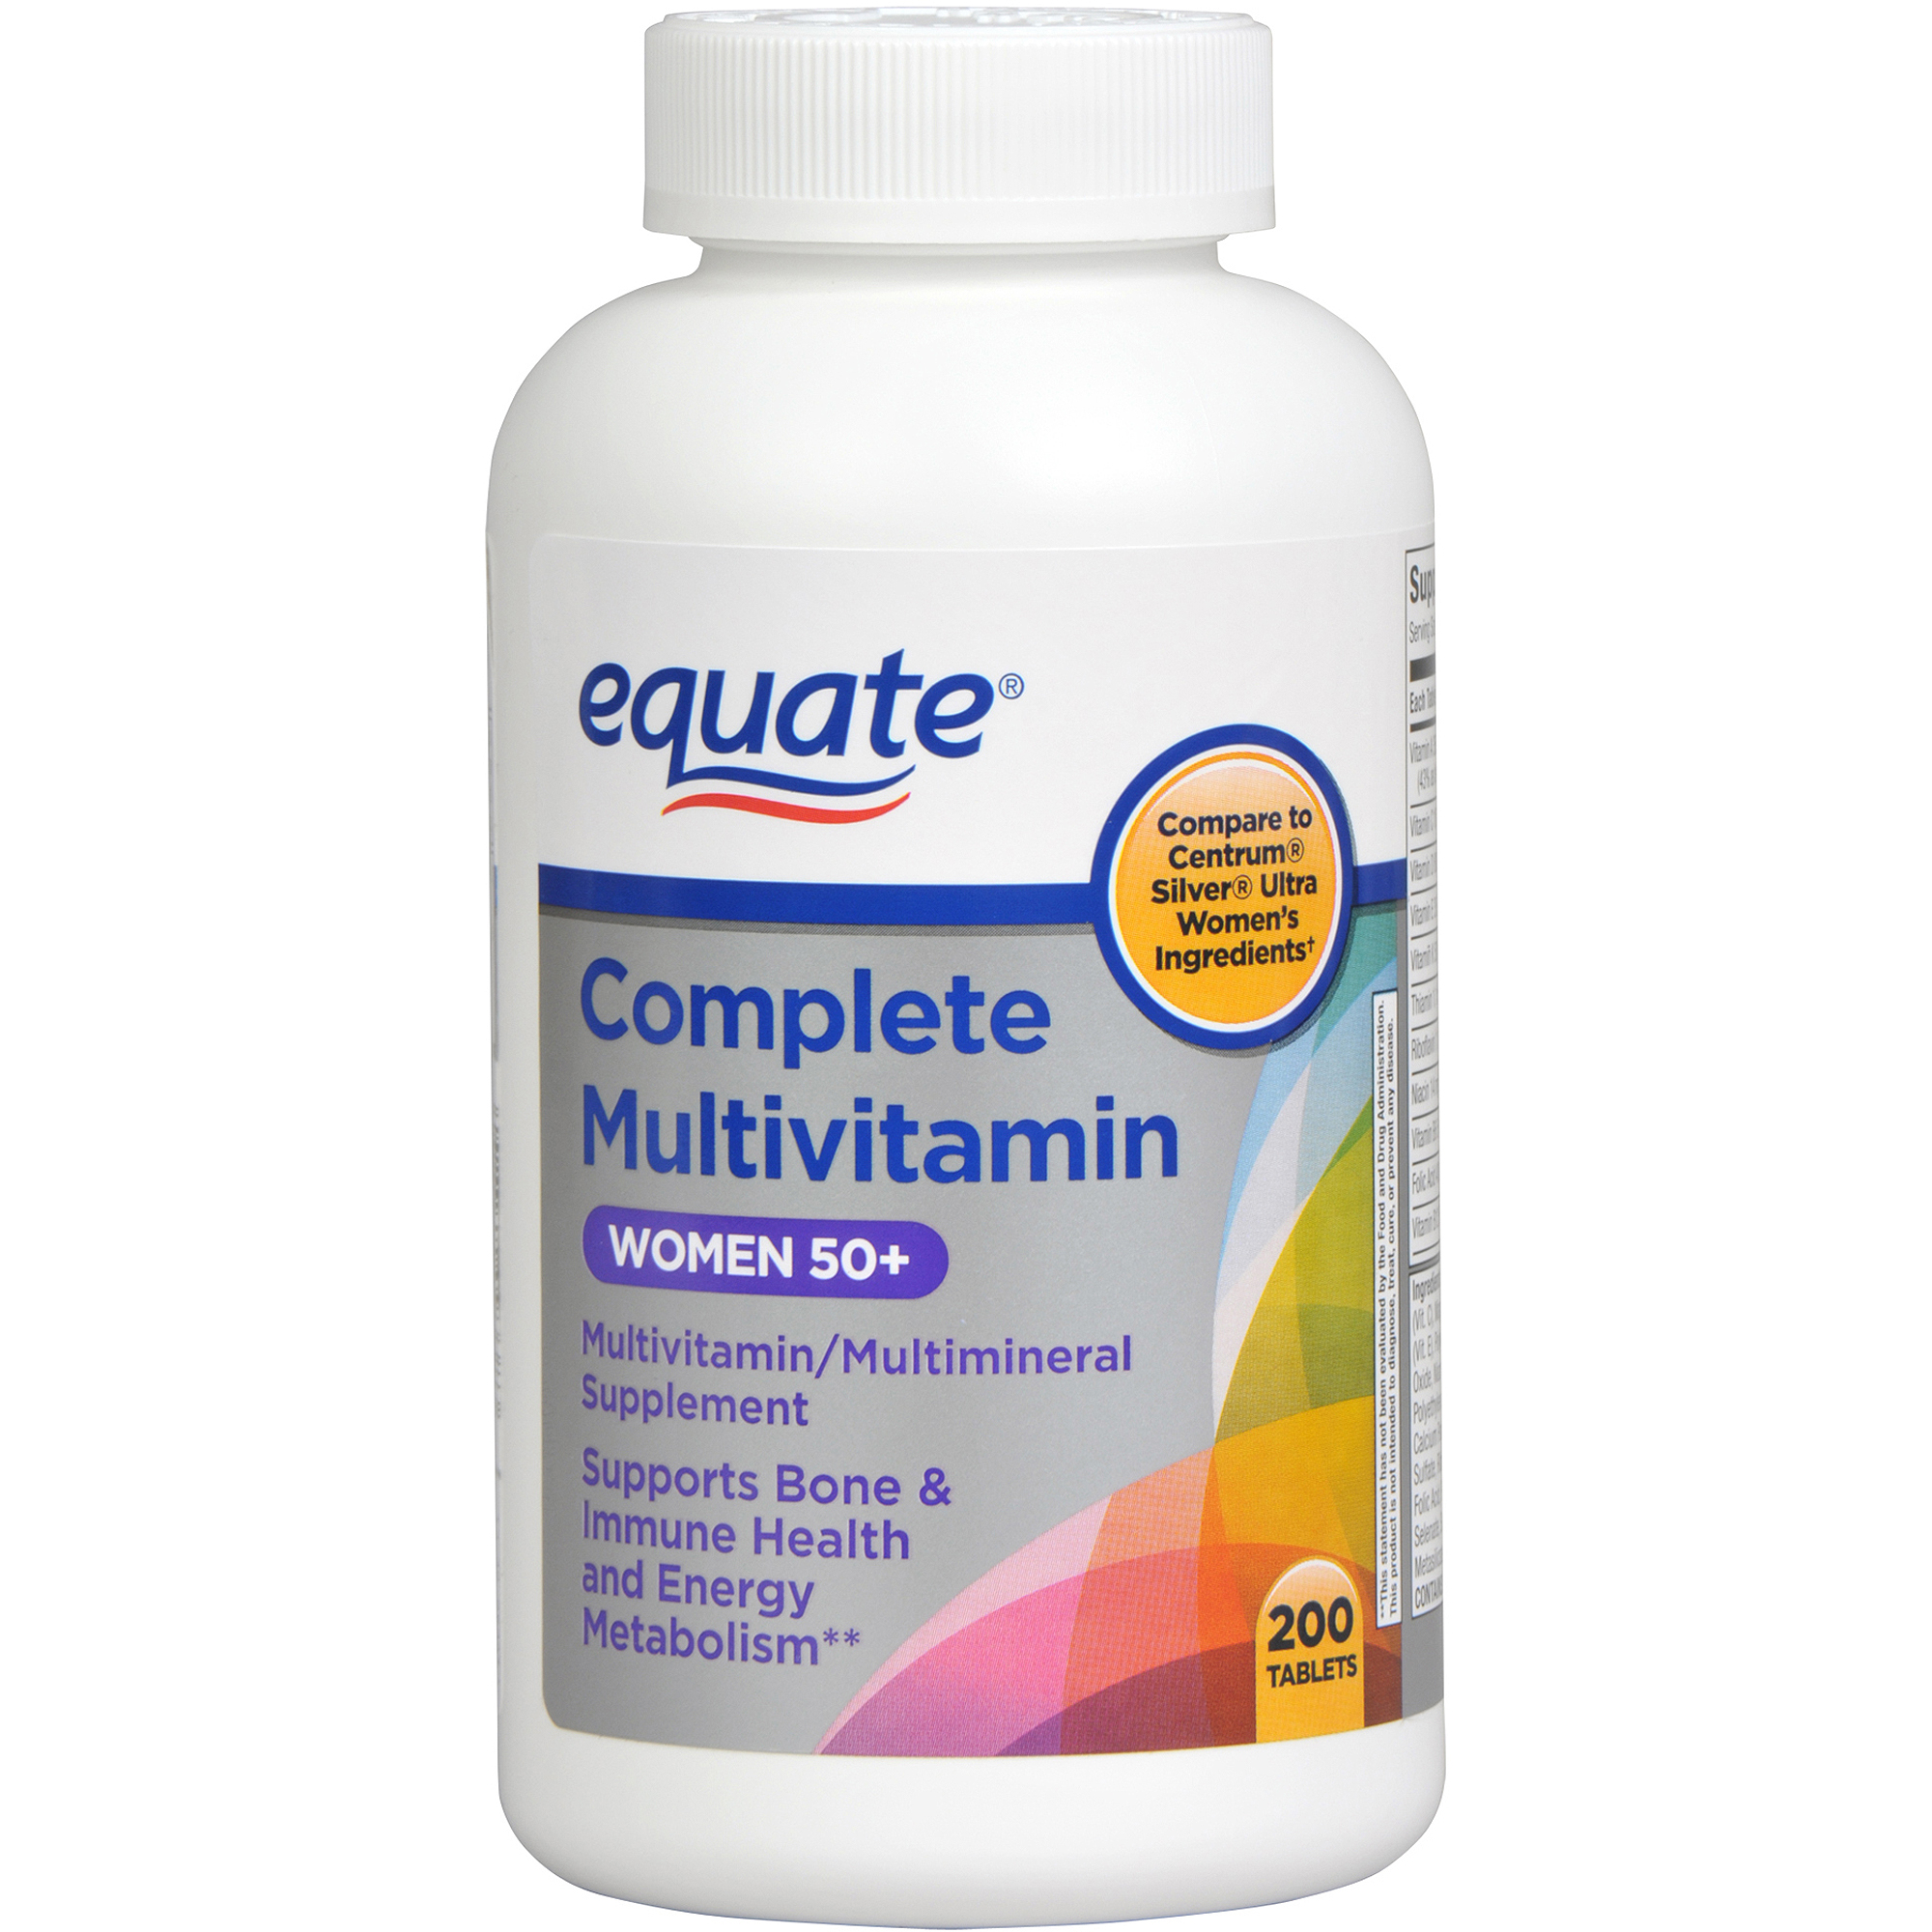 Equate Complete Ultra Women's Health Age 50+ Multivitamin/Multimineral, 200ct